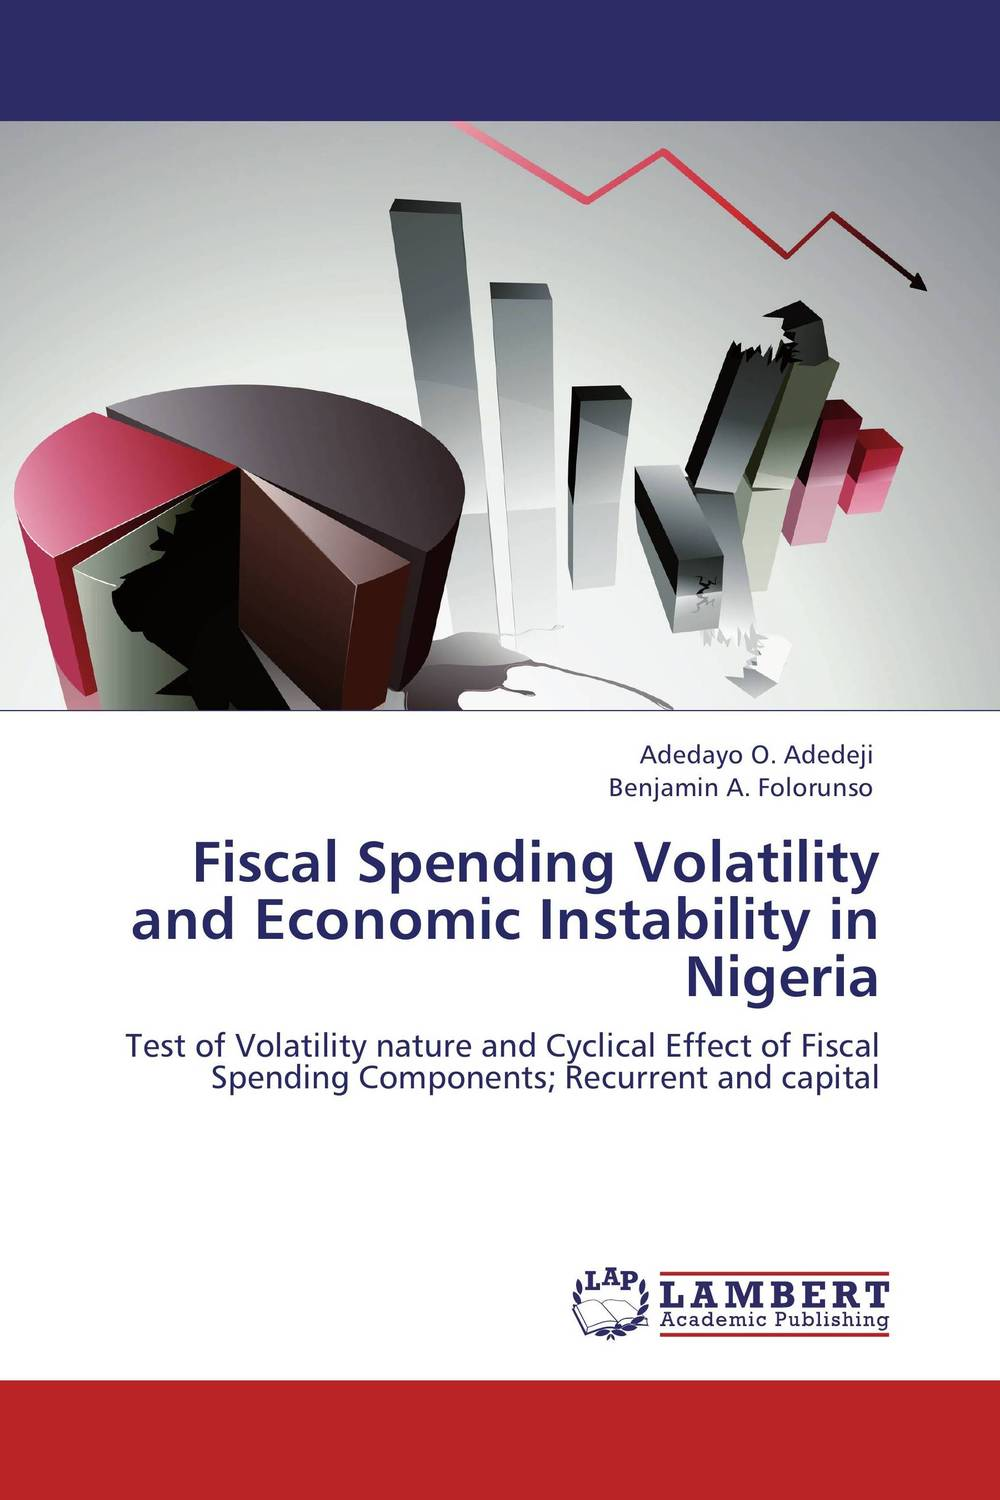 Fiscal Spending Volatility and Economic Instability in Nigeria tobias olweny and kenedy omondi the effect of macro economic factors on stock return volatility at nse